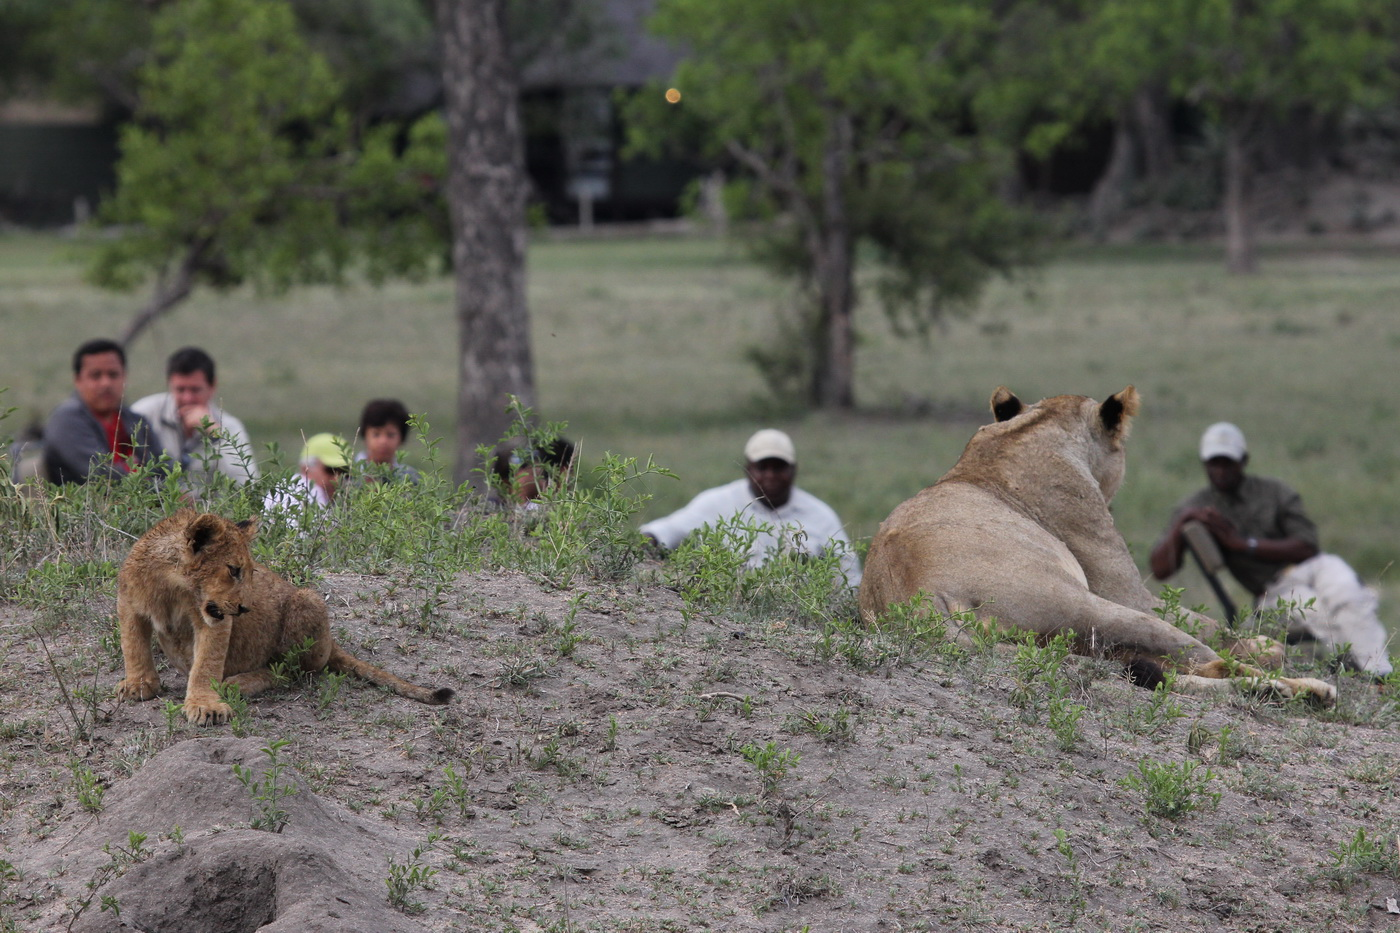 Being watched by Lions